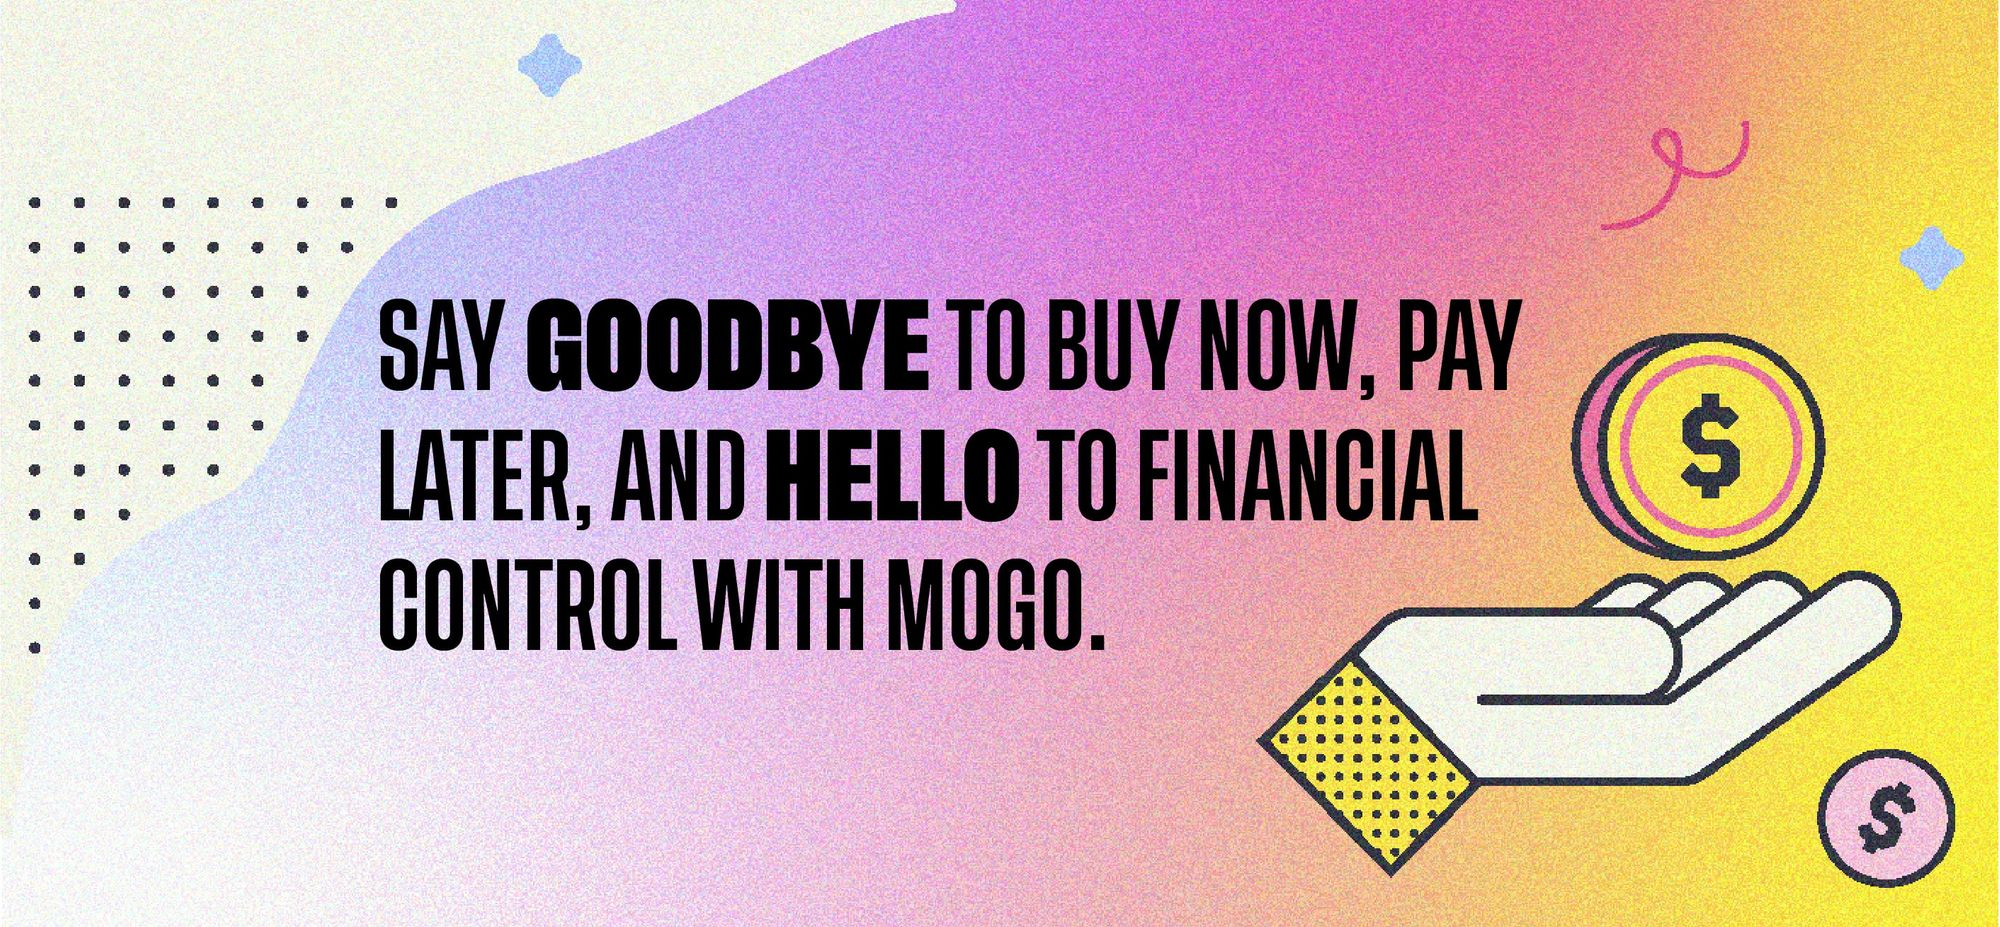 Say goodbye to buy now, pay later, and hello to financial control with Mogo